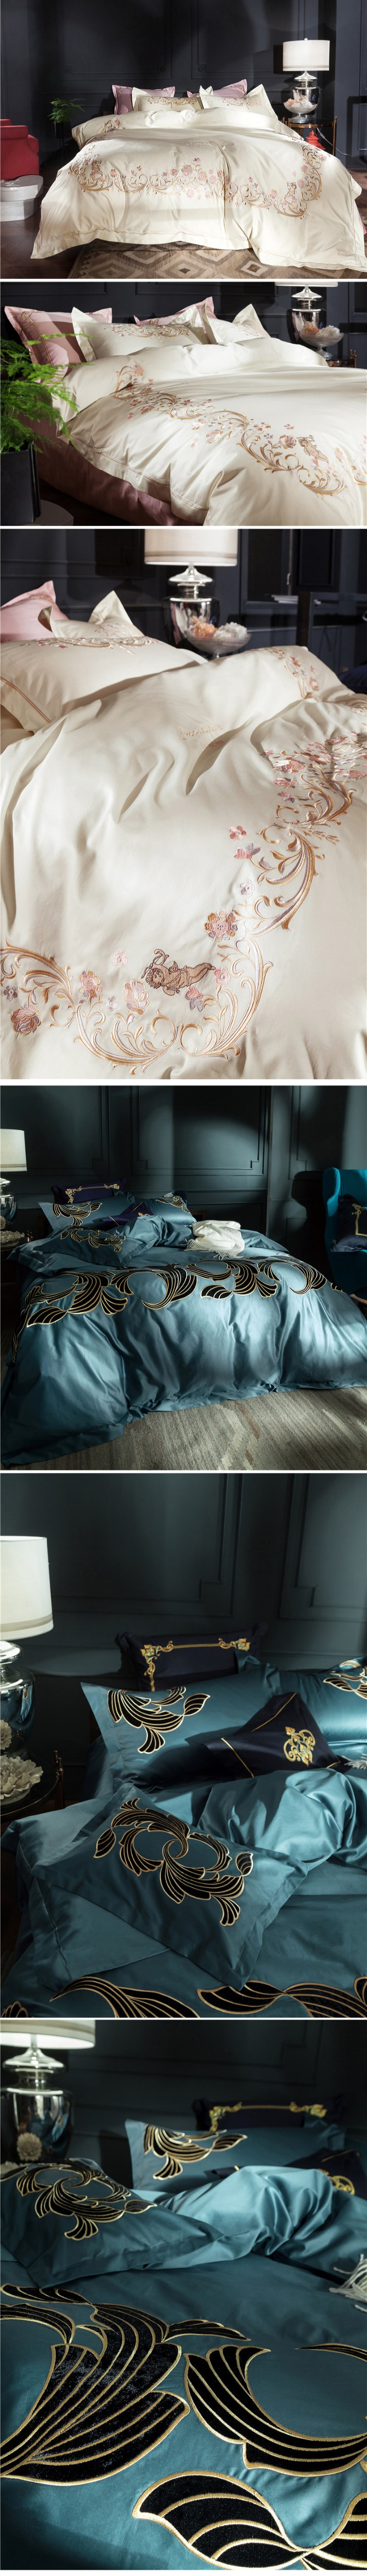 Luxury bedding sets 4pcs supima cotton duvet cover Chinese embroidery bed sheet home textile 4